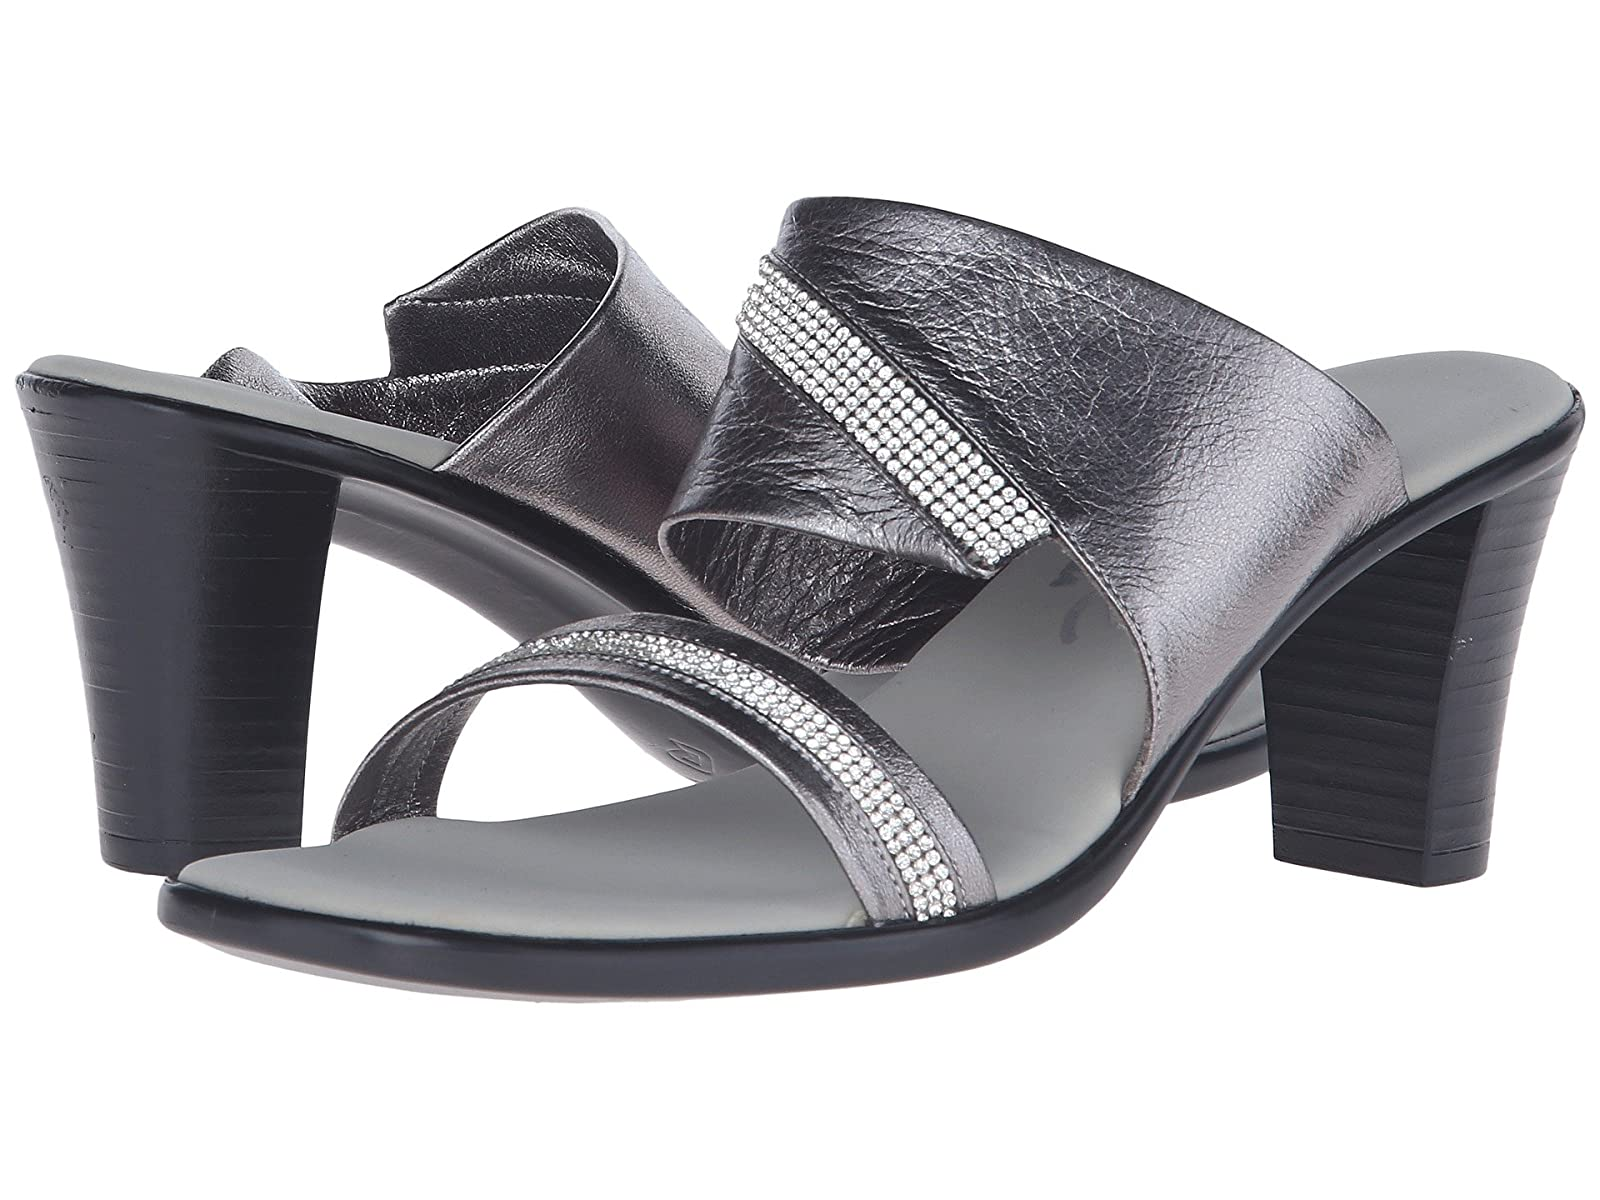 Onex AveryCheap and distinctive eye-catching shoes